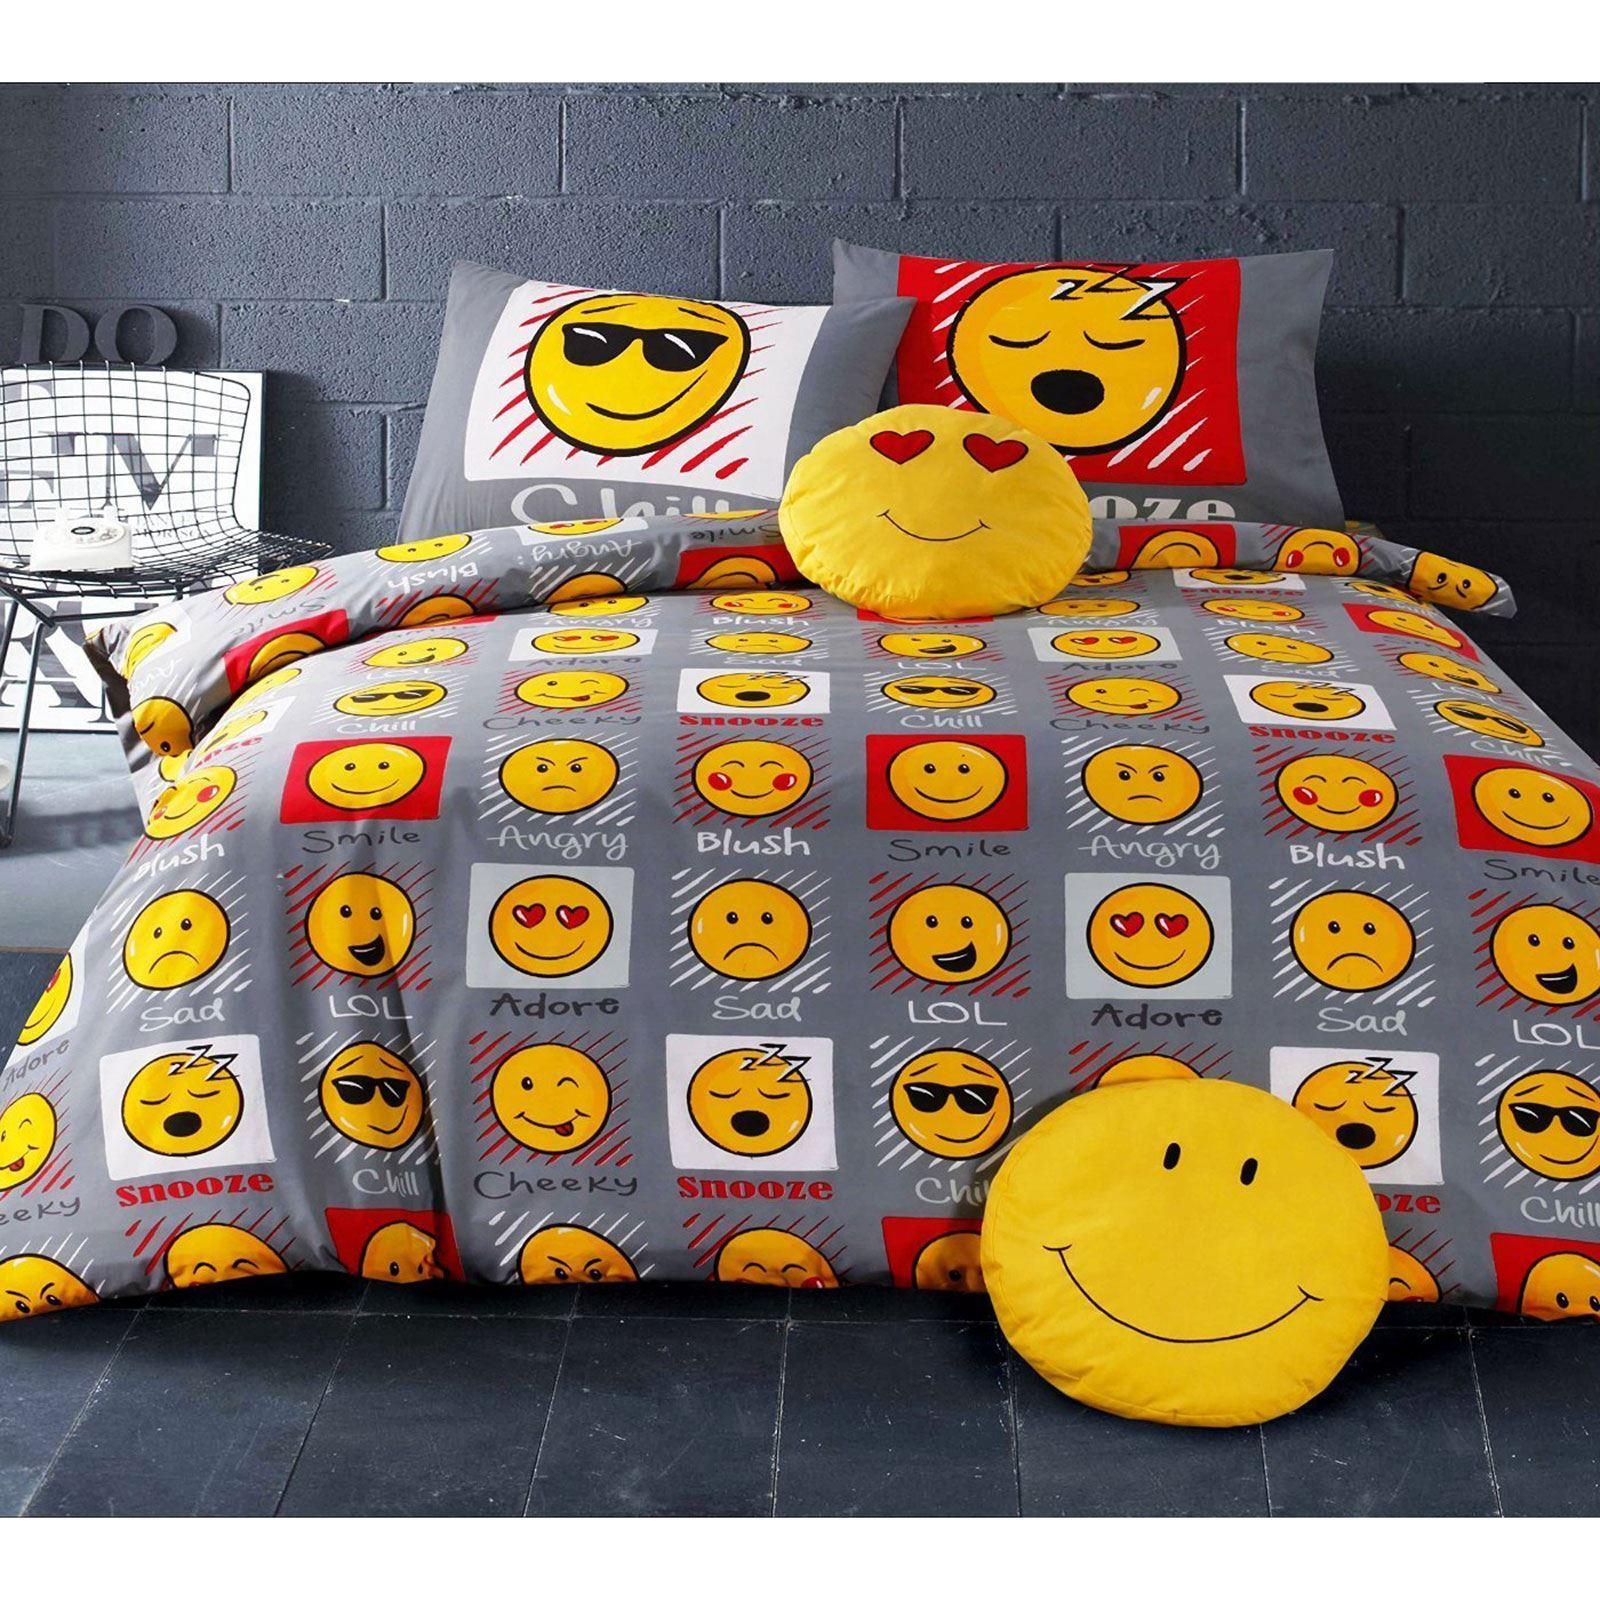 EMOJI DUVET COVER SETS SINGLE & DOUBLE - FUNNY SMILEY CHRISTMAS ...